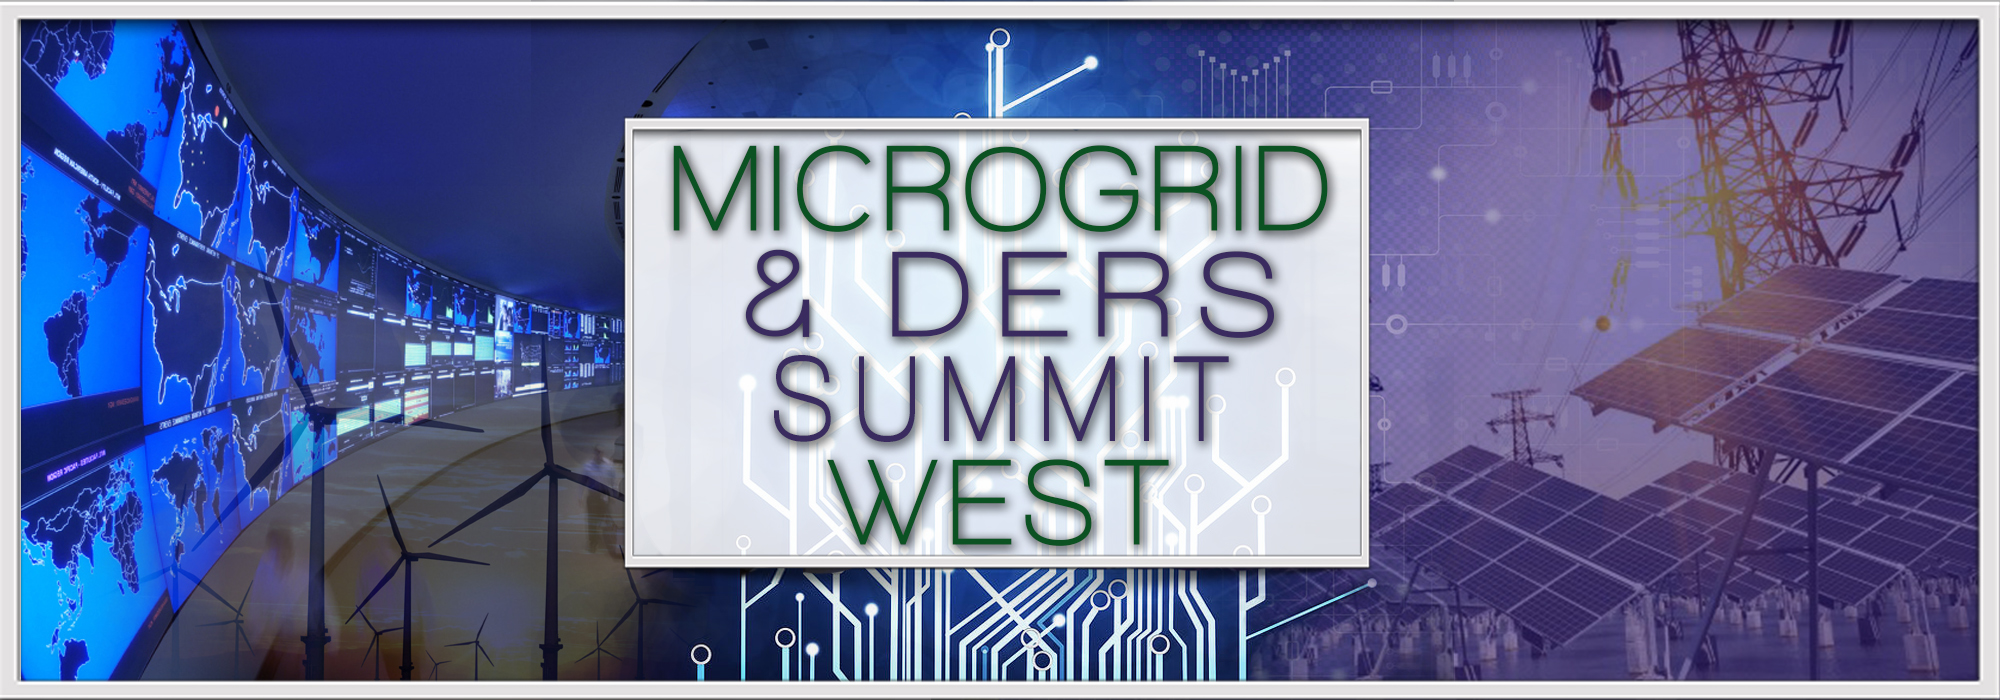 Microgrid WEST Banner 10.22.18 for website